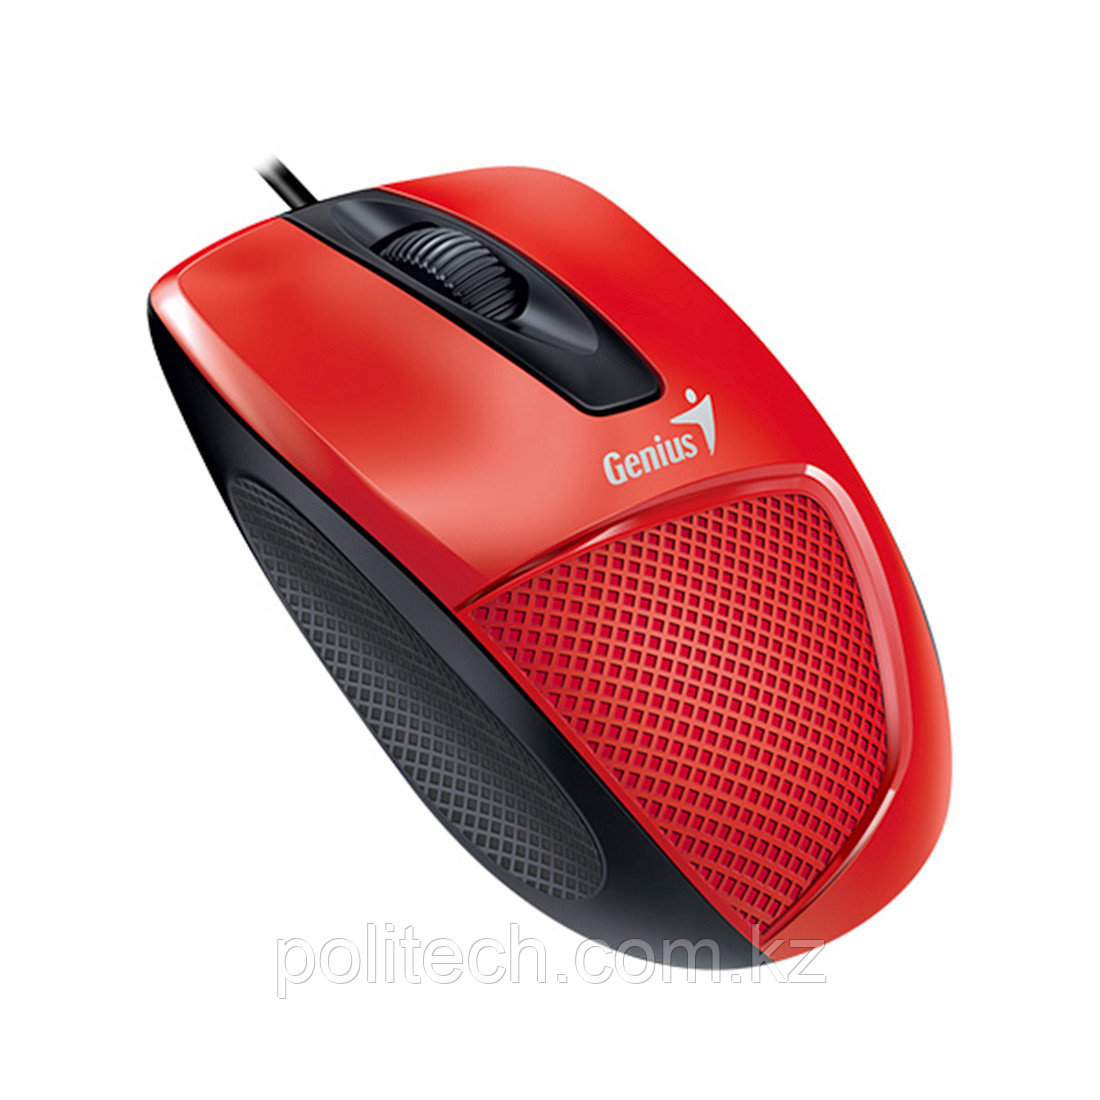 Компьютерная мышь Genius DX-150X Red